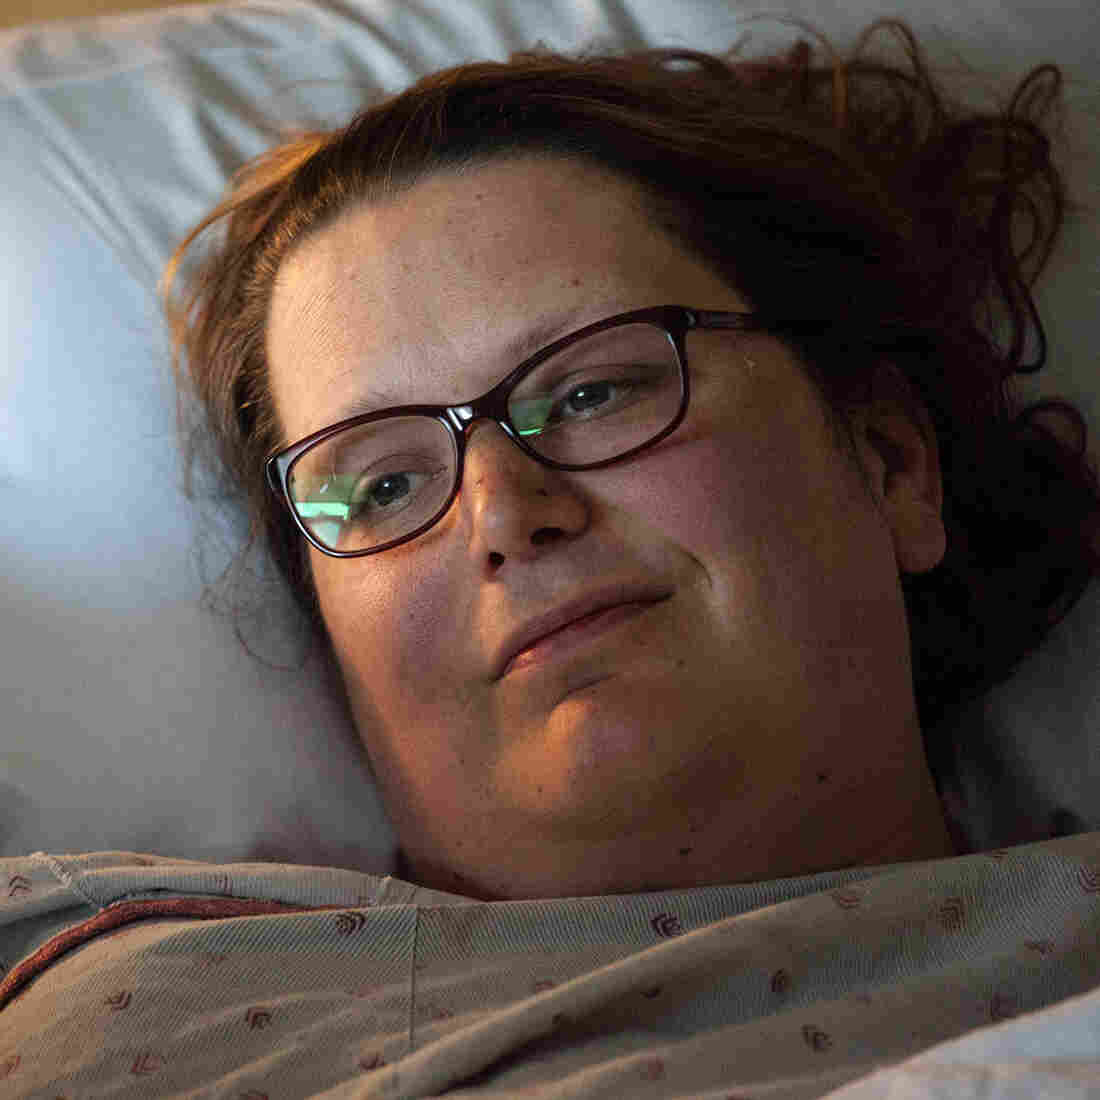 """""""Over the moon excited, terrified, scared, emotional,"""" is how Jetta'Mae Carlisle says she felt before her surgery."""